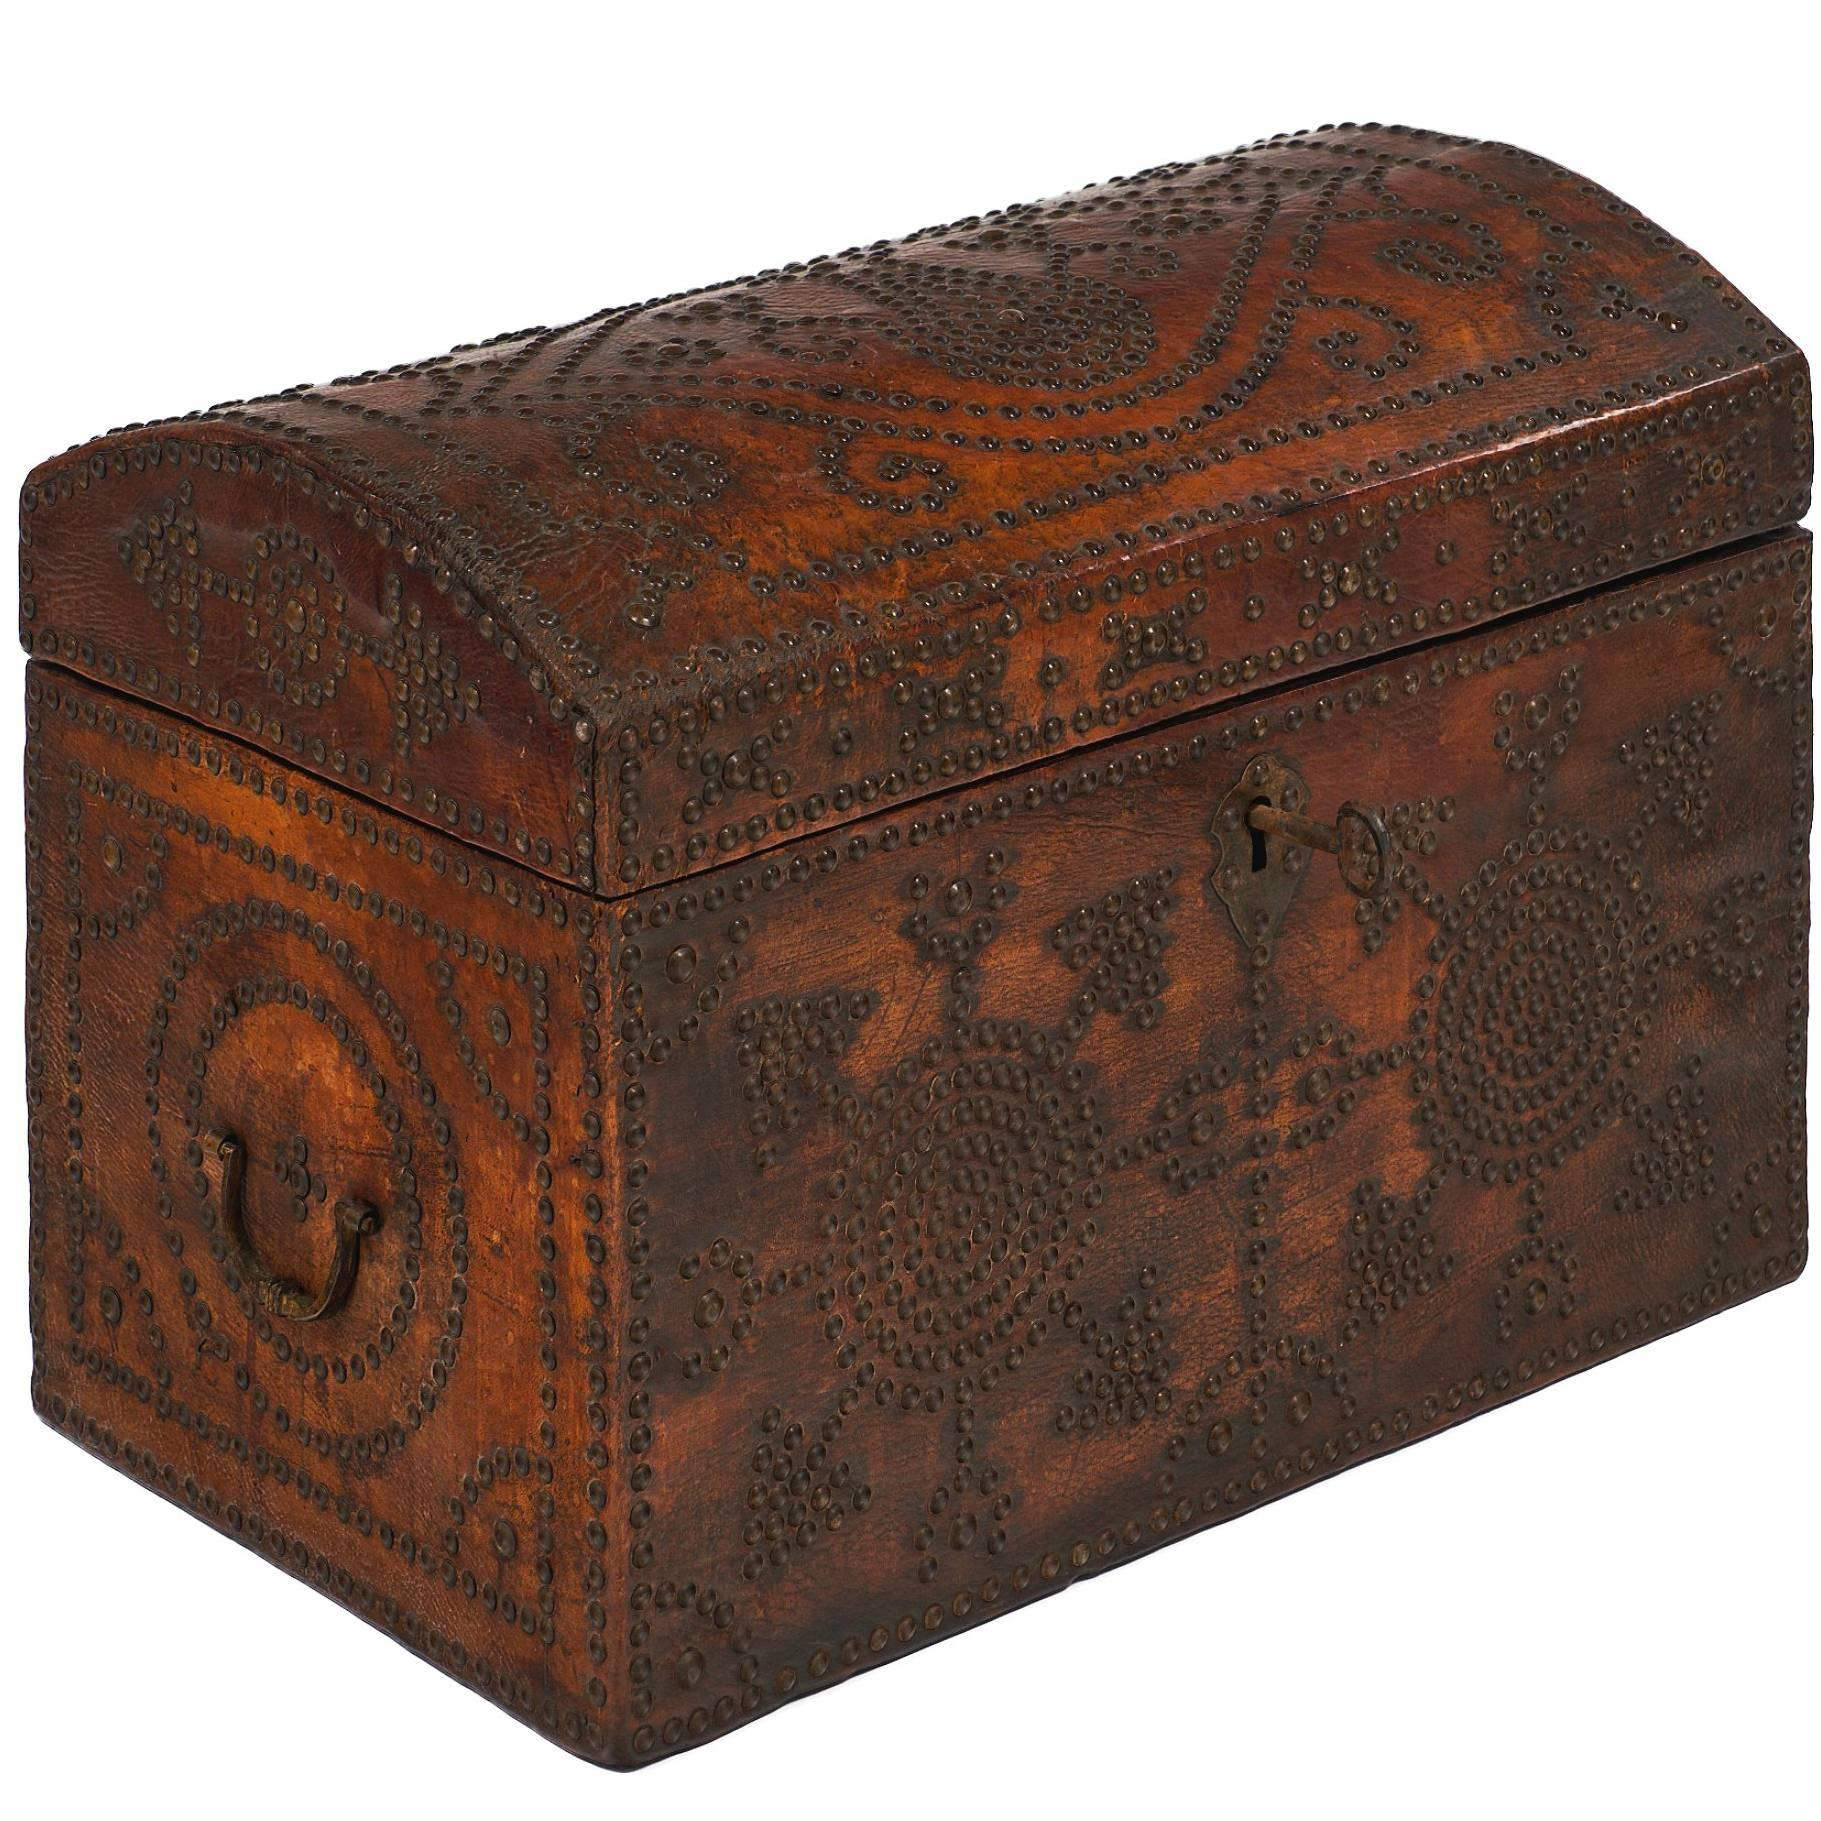 Napoleon III Period 19th Century French Leather Box